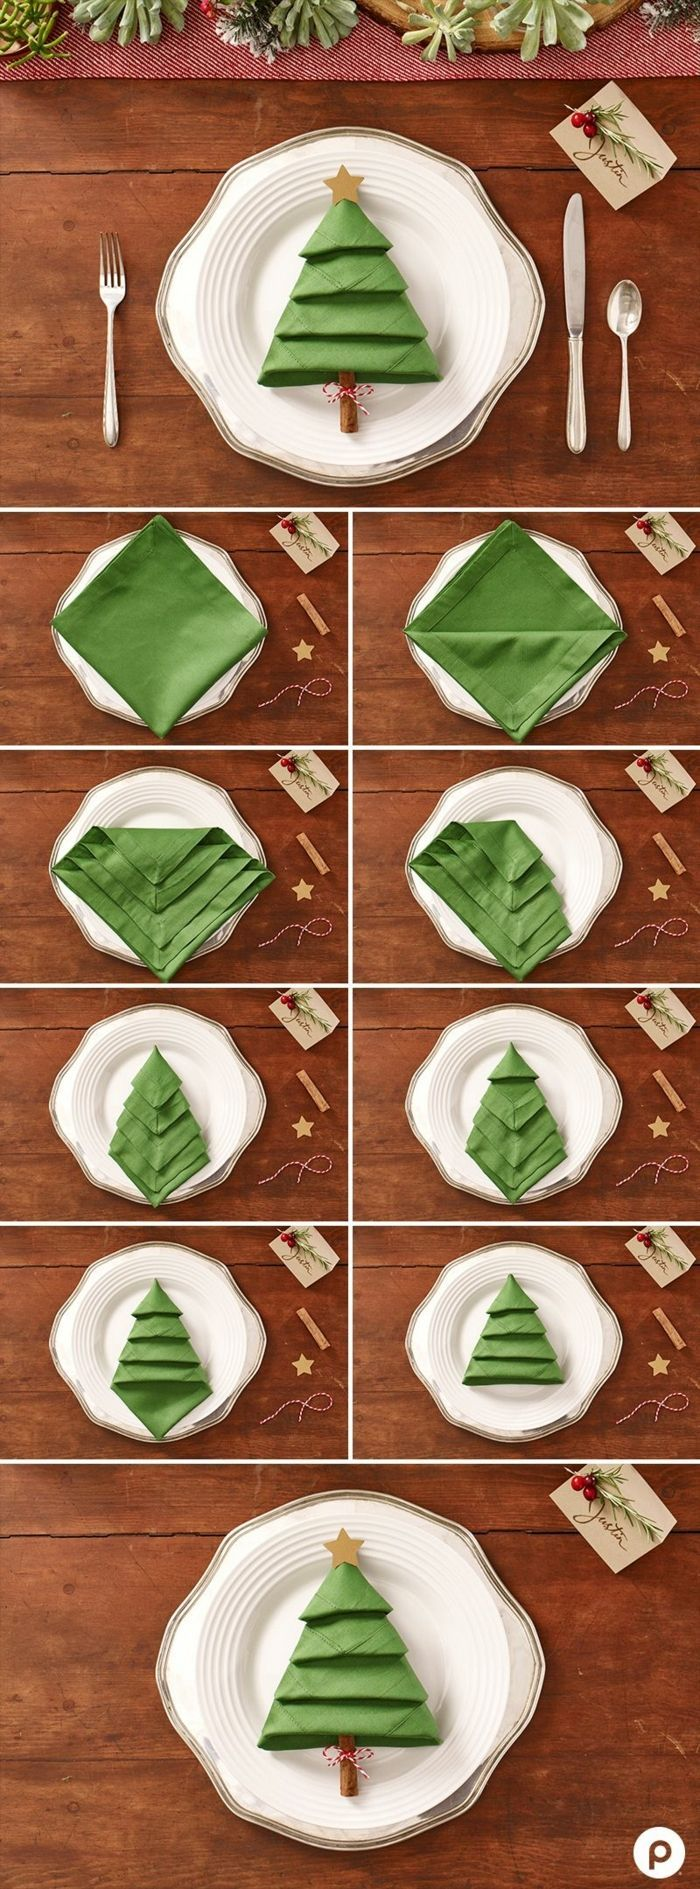 Photo of creative table decorations napkins fold christmas simple instructions step by step explanation white